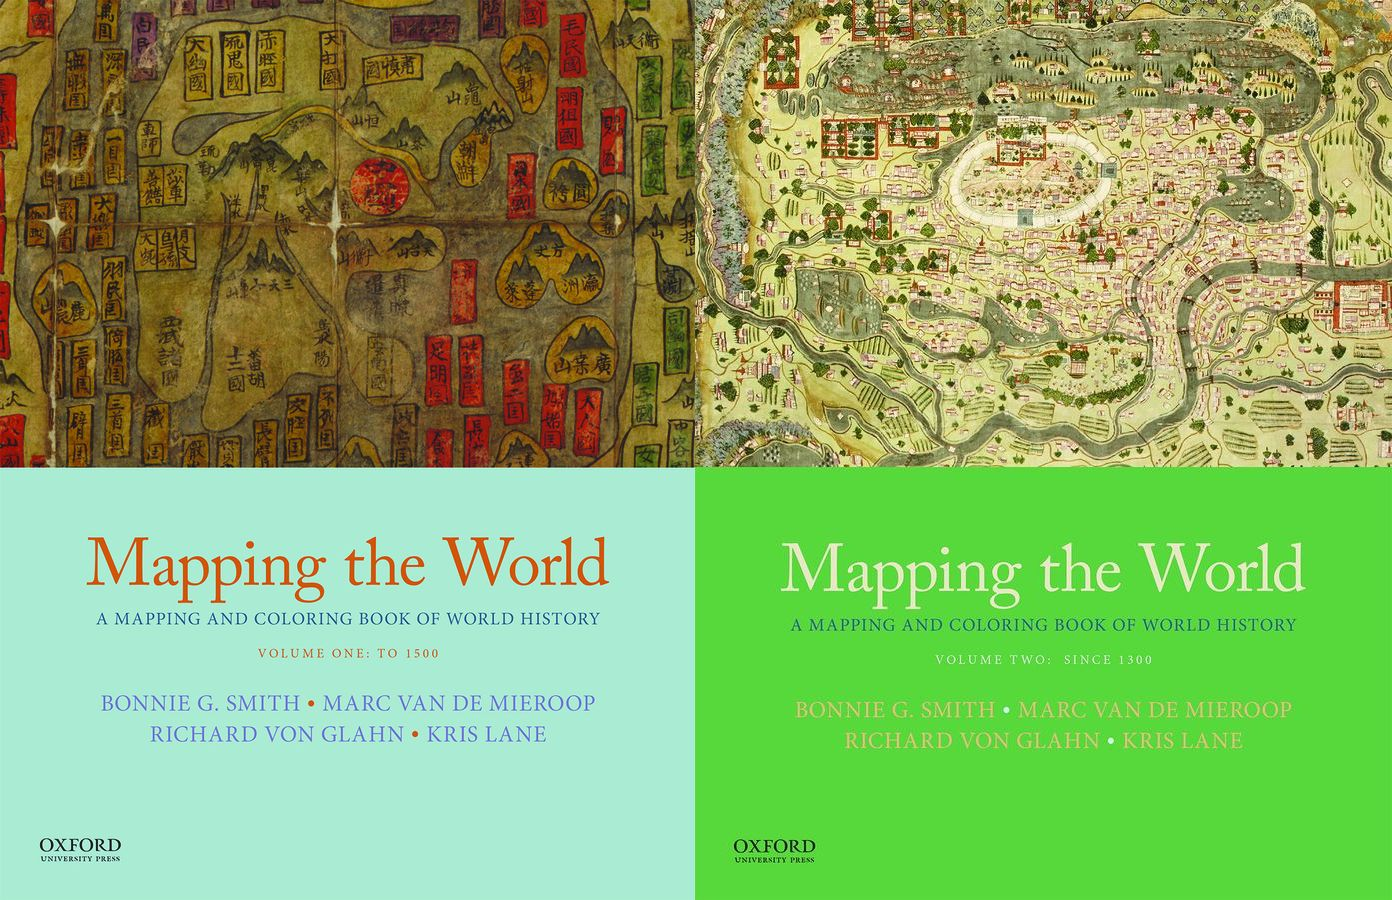 Mapping the World: A Mapping and Coloring Book of World History